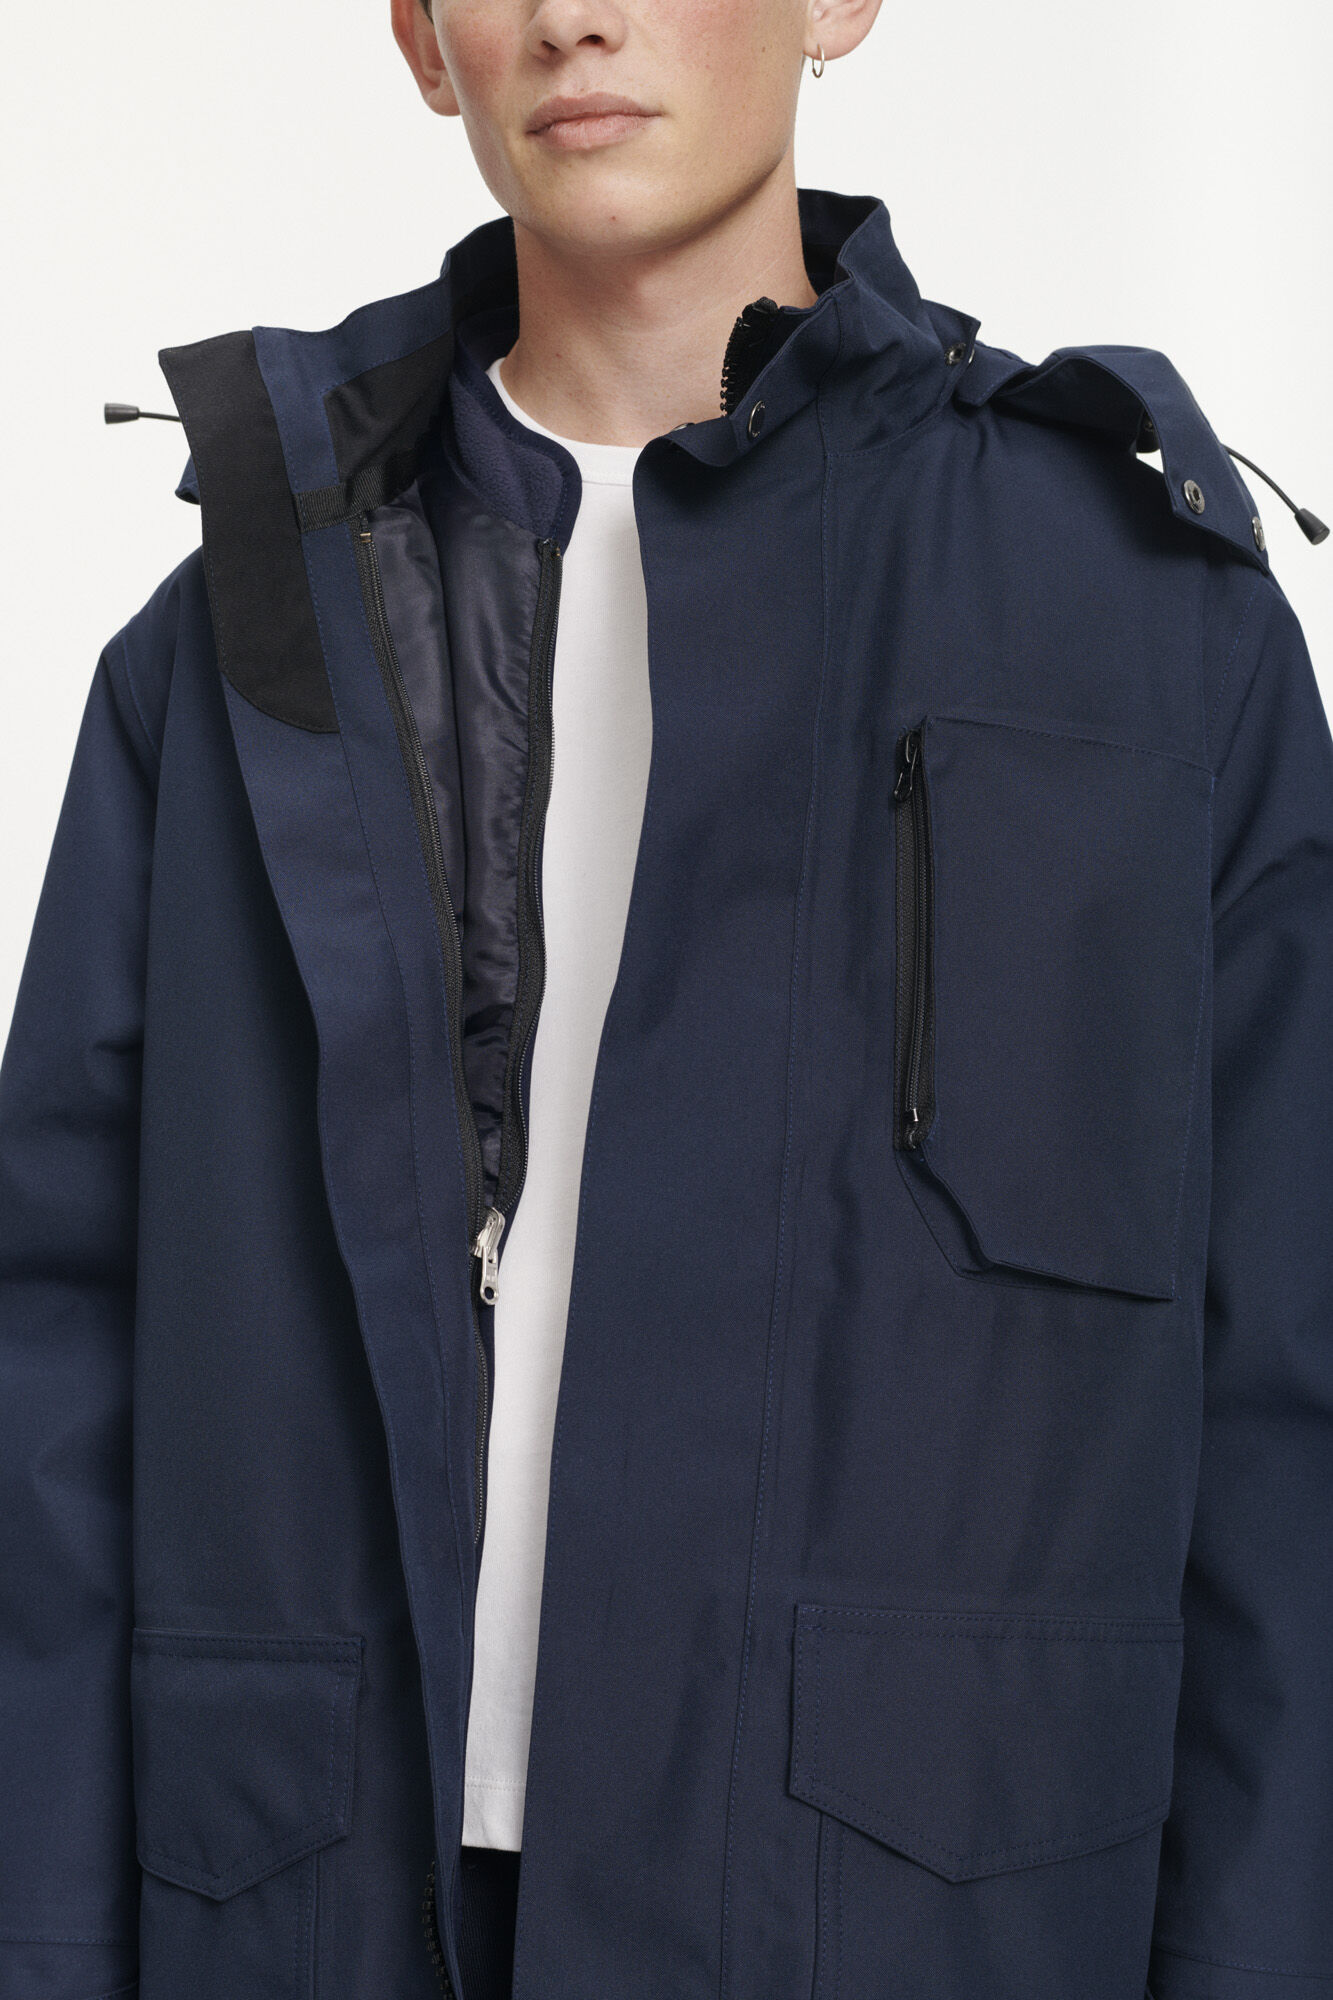 Kansas M gore-tex jacket 12656